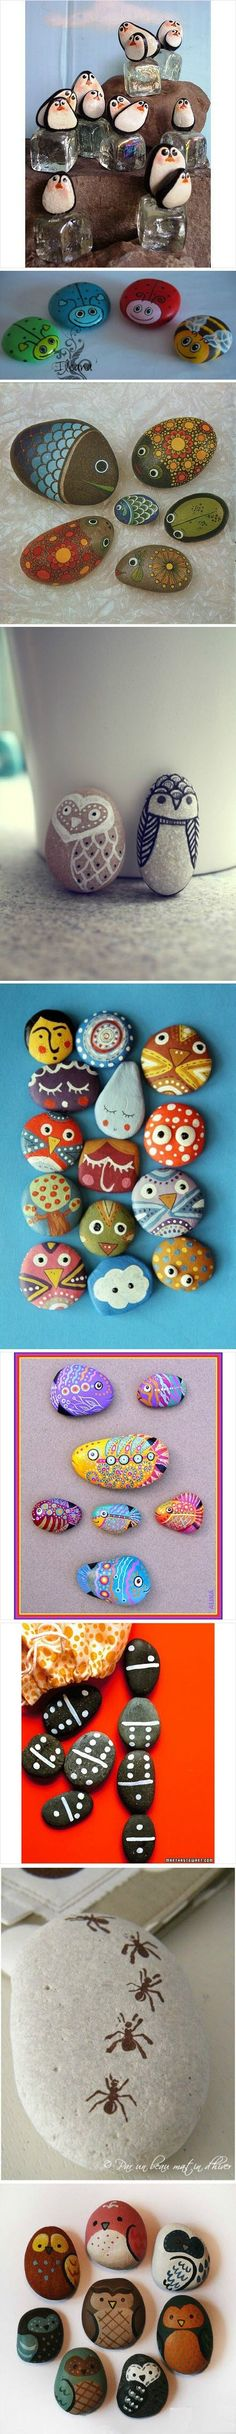 pebble art ~ Find a bunch of flat-ish rocks and paint them. Would it be fun to leave one every place you go? (picnic, beach, friend's back yard, etc)